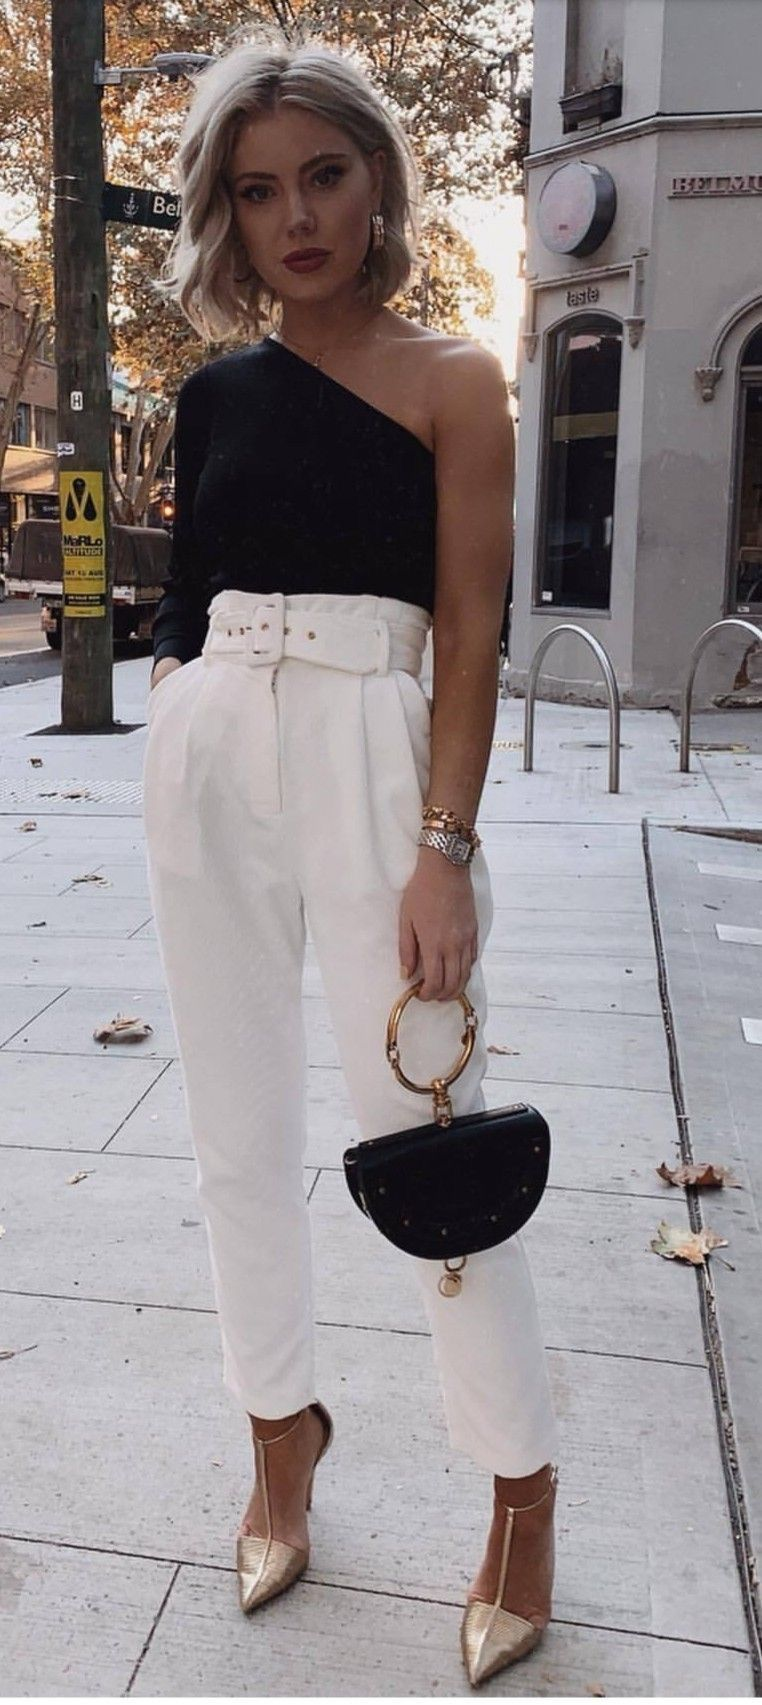 Love this black and white casual chic outfit.